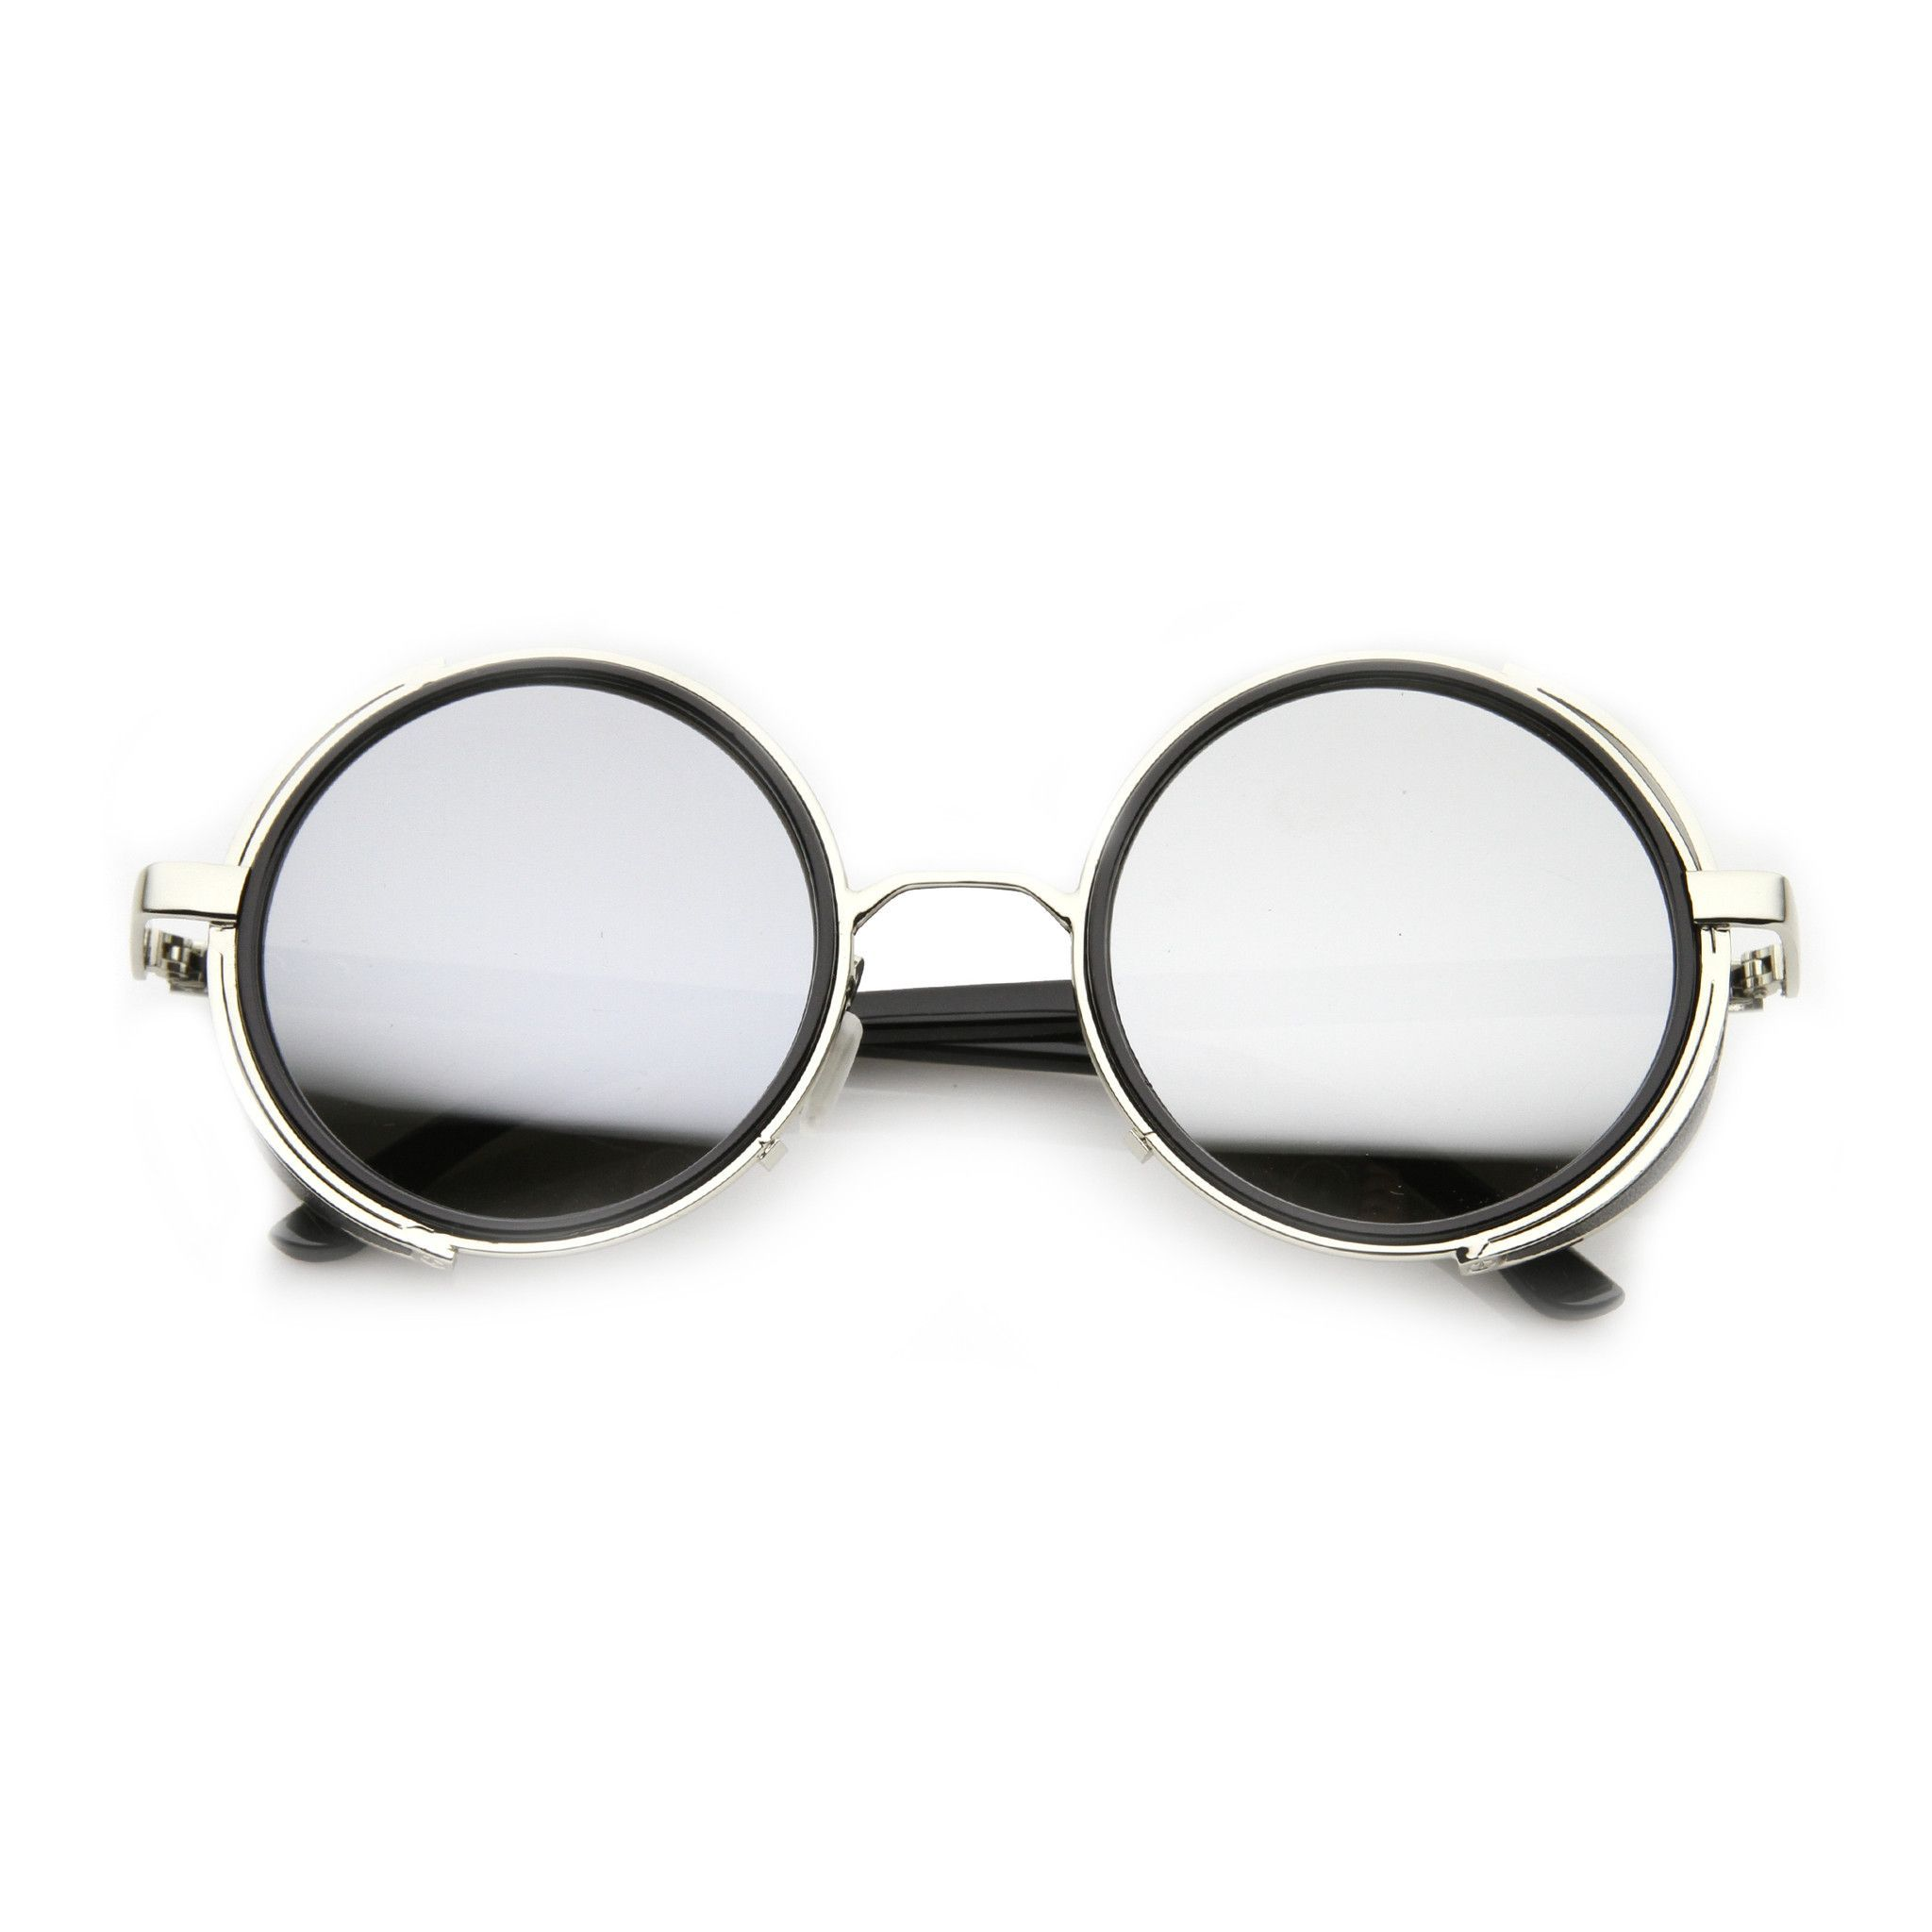 909afec0fdd ... Studio covered side round silhouette sunglasses featuring a metal outer  frame with plastic filling the inner part and shield covers at the sides.